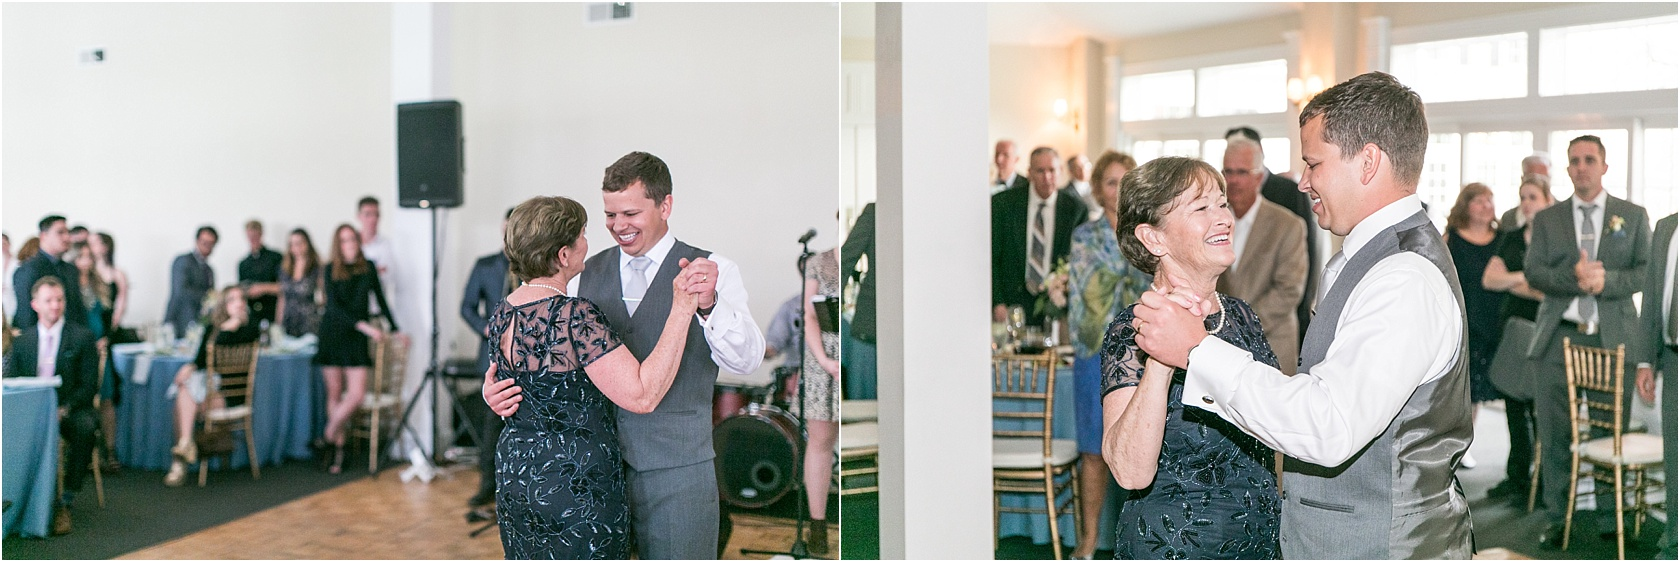 Ousborne Springfield Manor Wedding Living Radiant Photography photos_0157.jpg